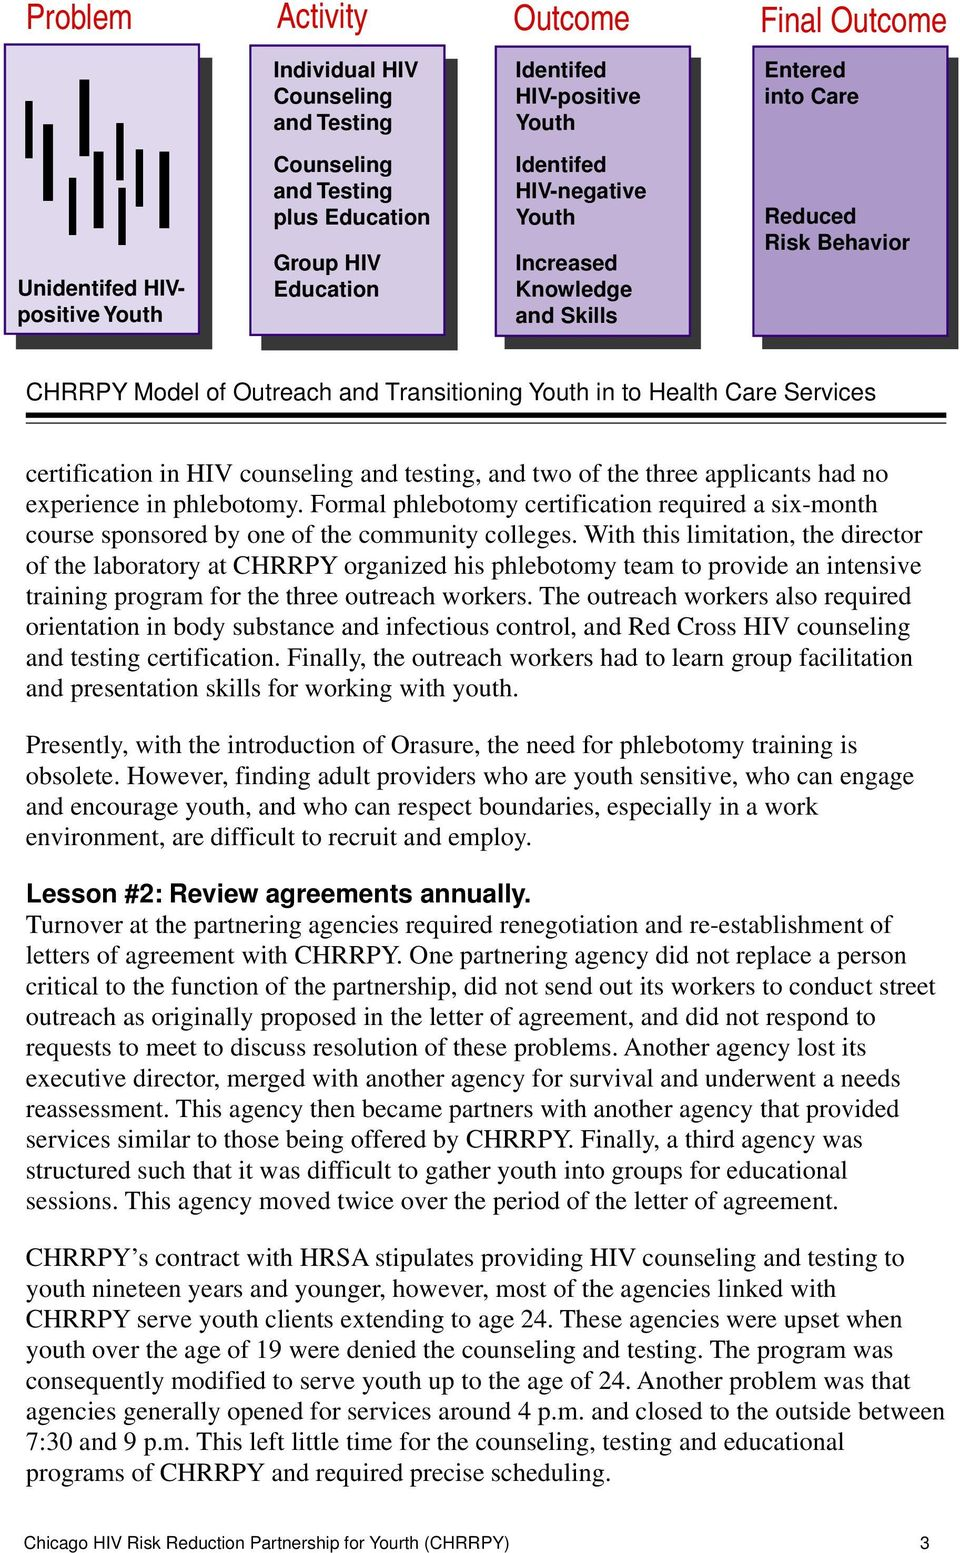 HIV counseling and testing, and two of the three applicants had no experience in phlebotomy. Formal phlebotomy certification required a six-month course sponsored by one of the community colleges.